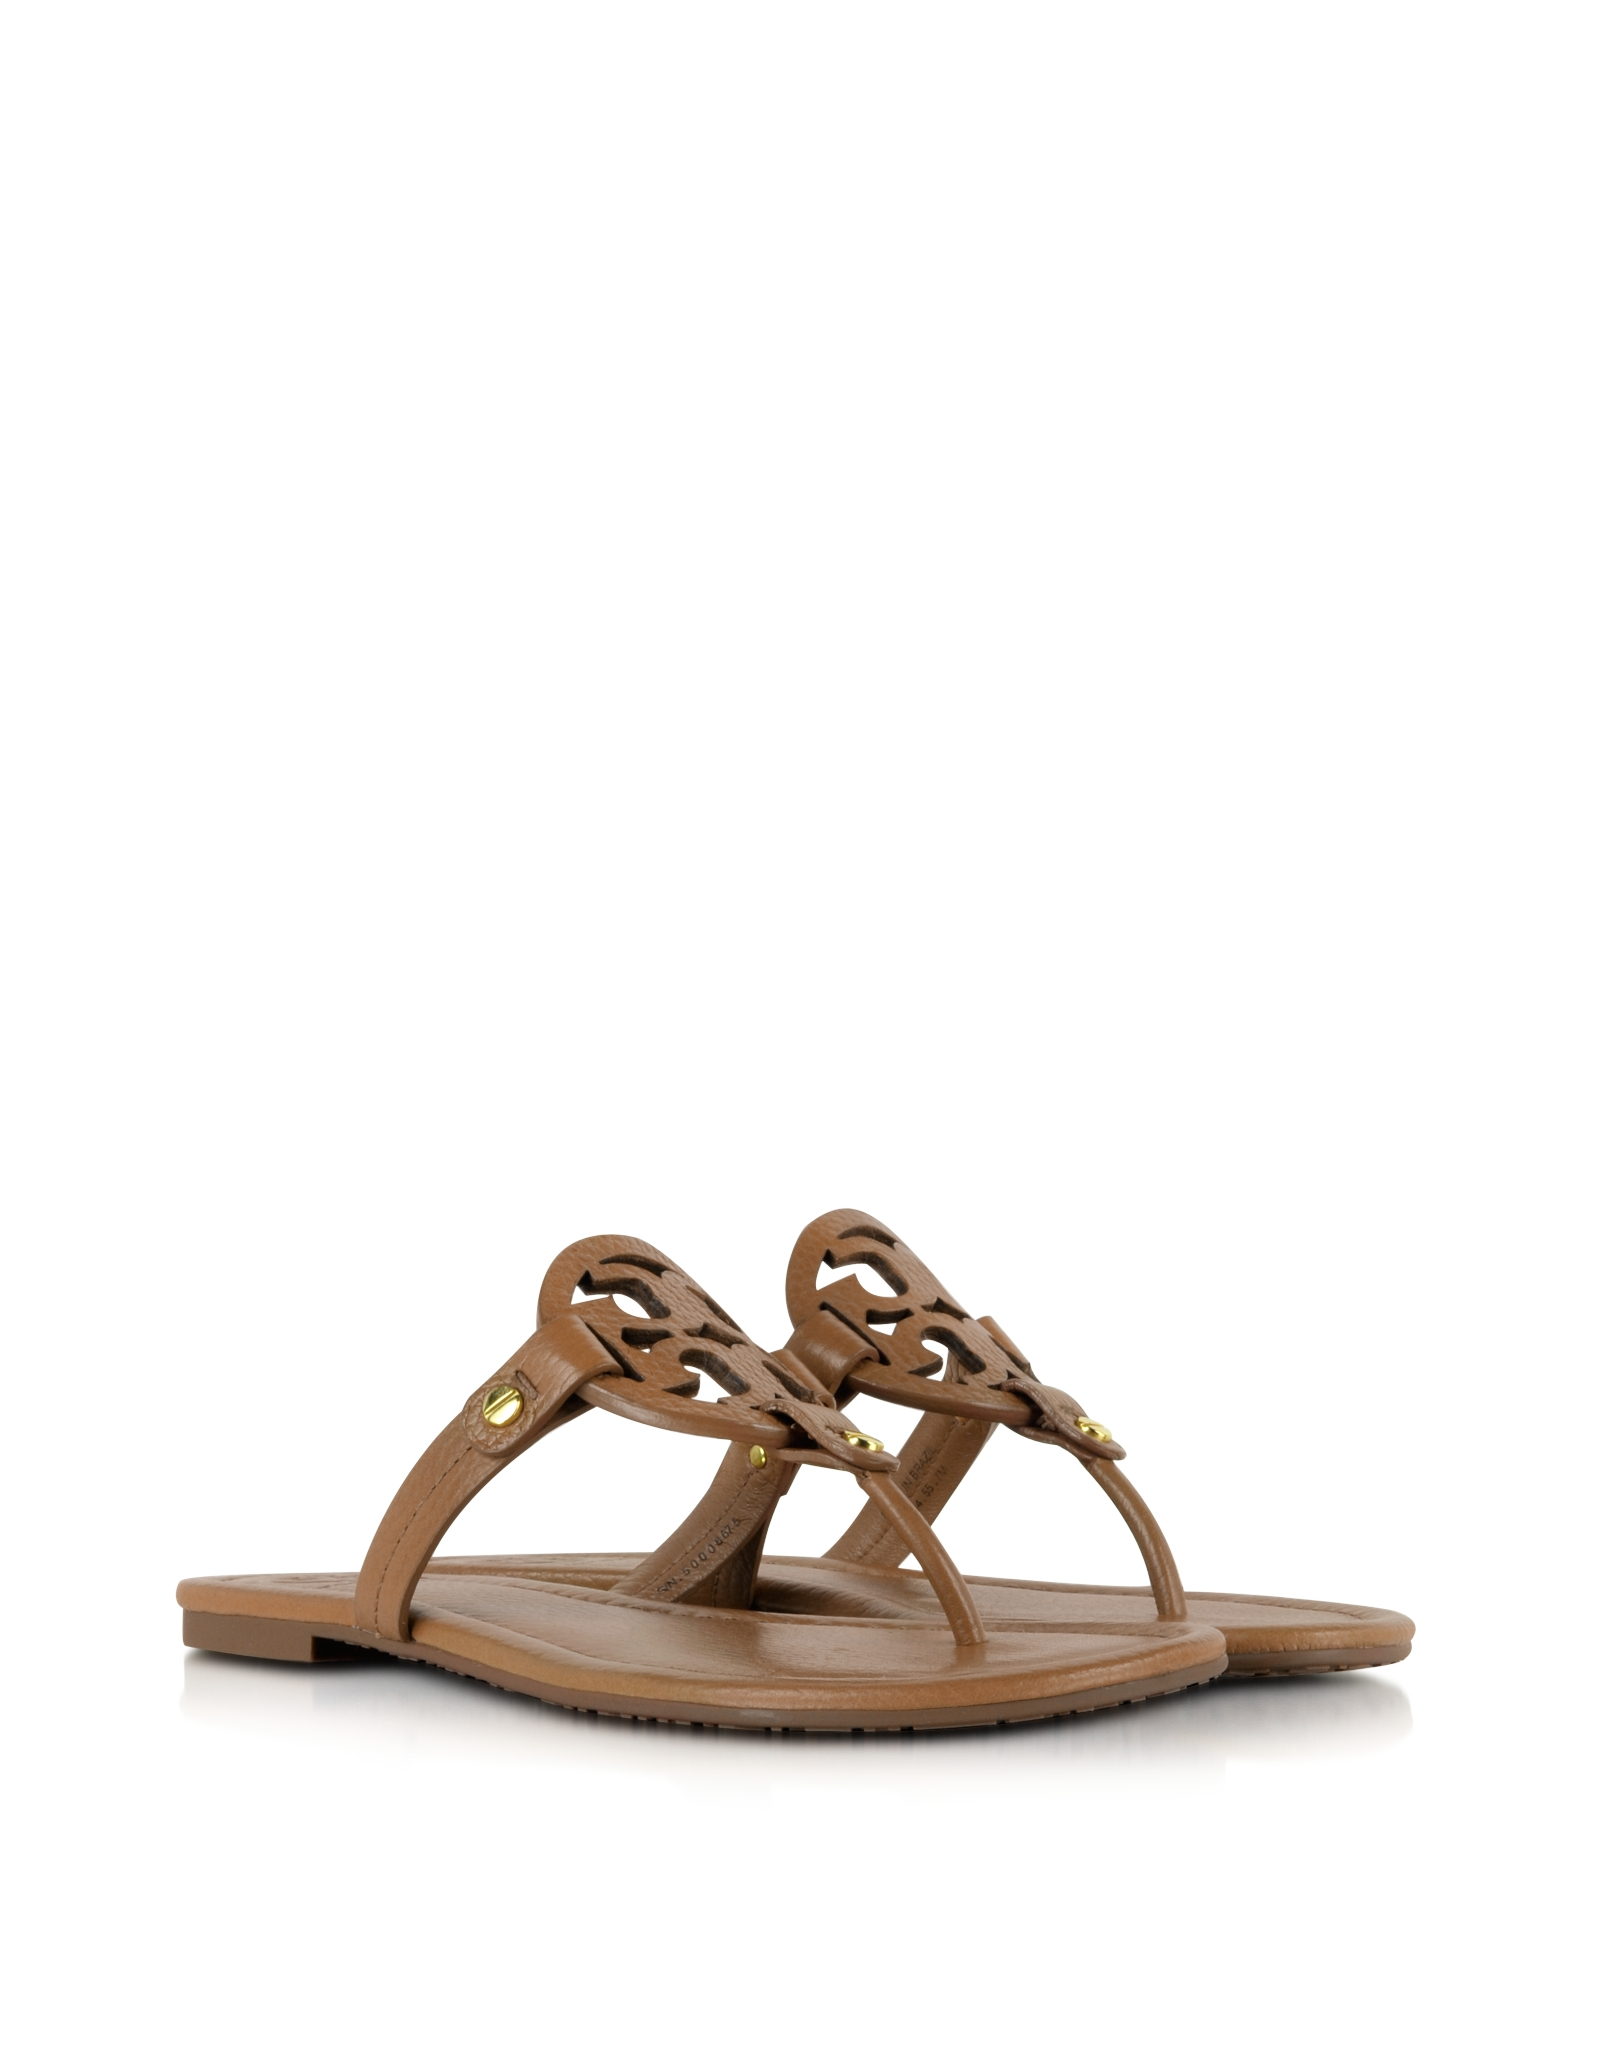 1c980fa5ba77 Tory Burch Miller Royal Tan Leather Sandal in Brown - Lyst